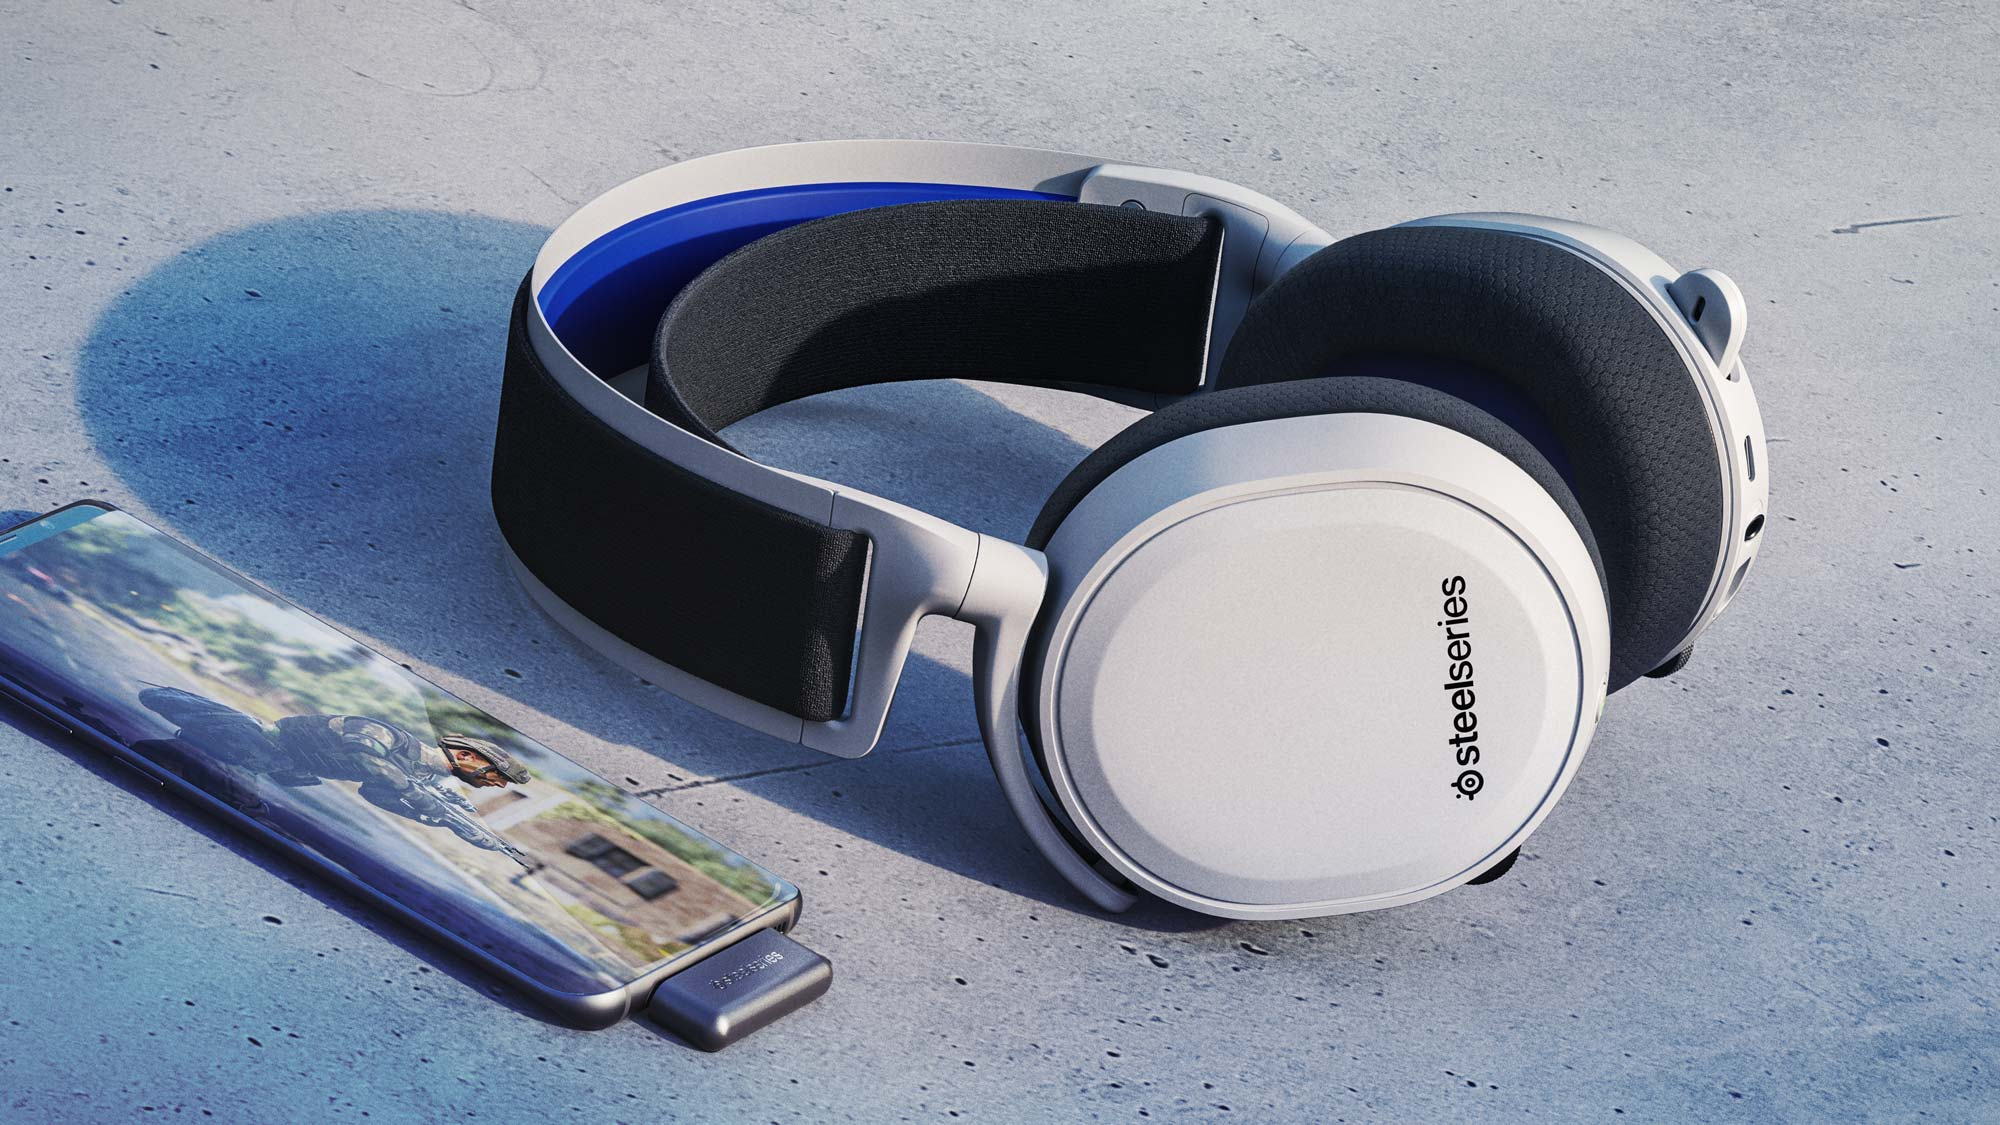 Best wireless gaming headsets: SteelSeries Arctis 7P/7X